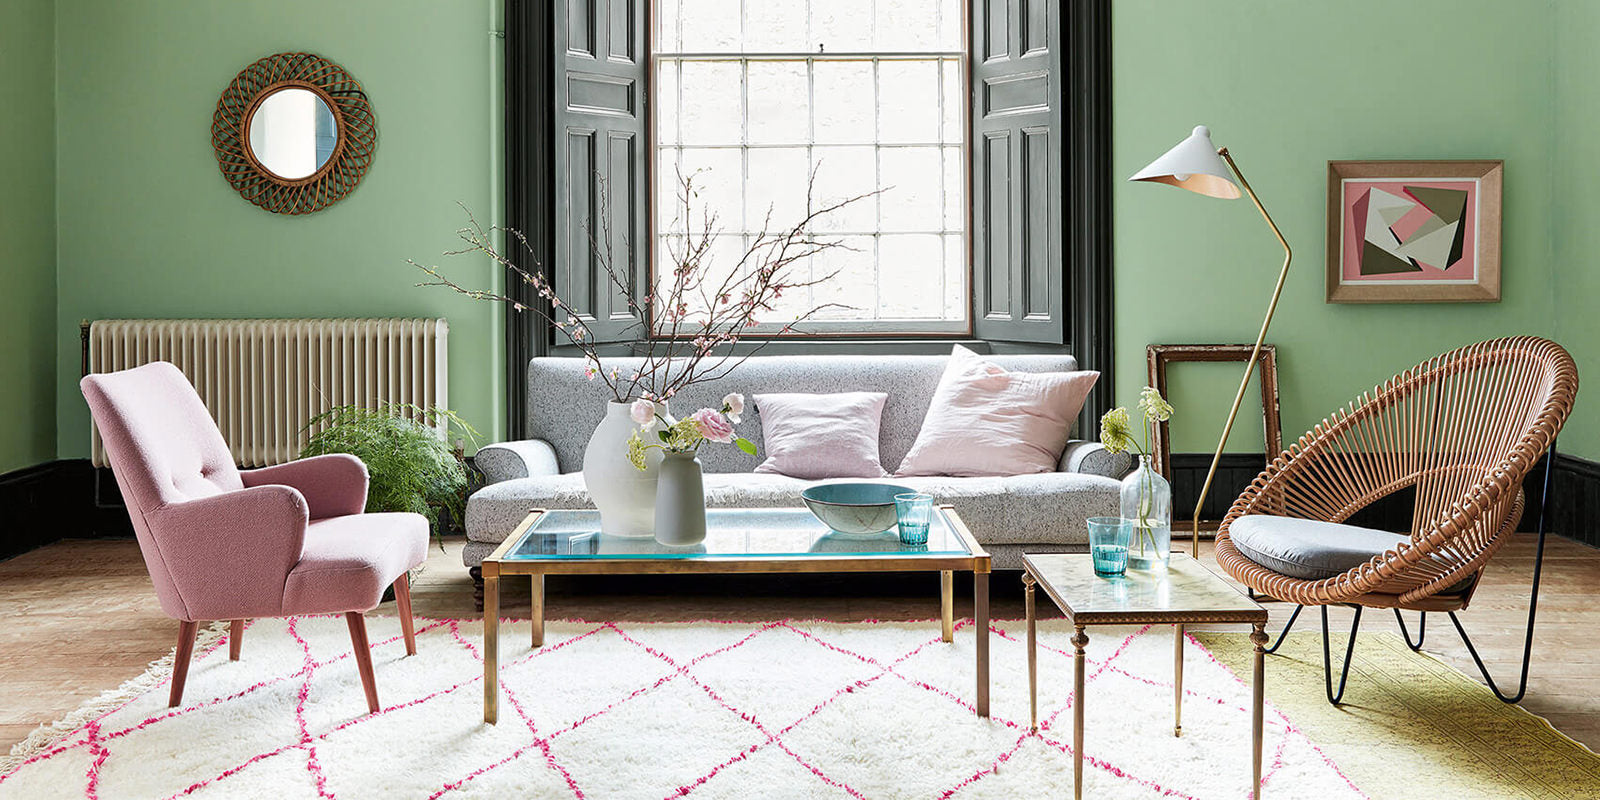 Room colour scheme with pale grey sofa, pink armchairs, mint green walls